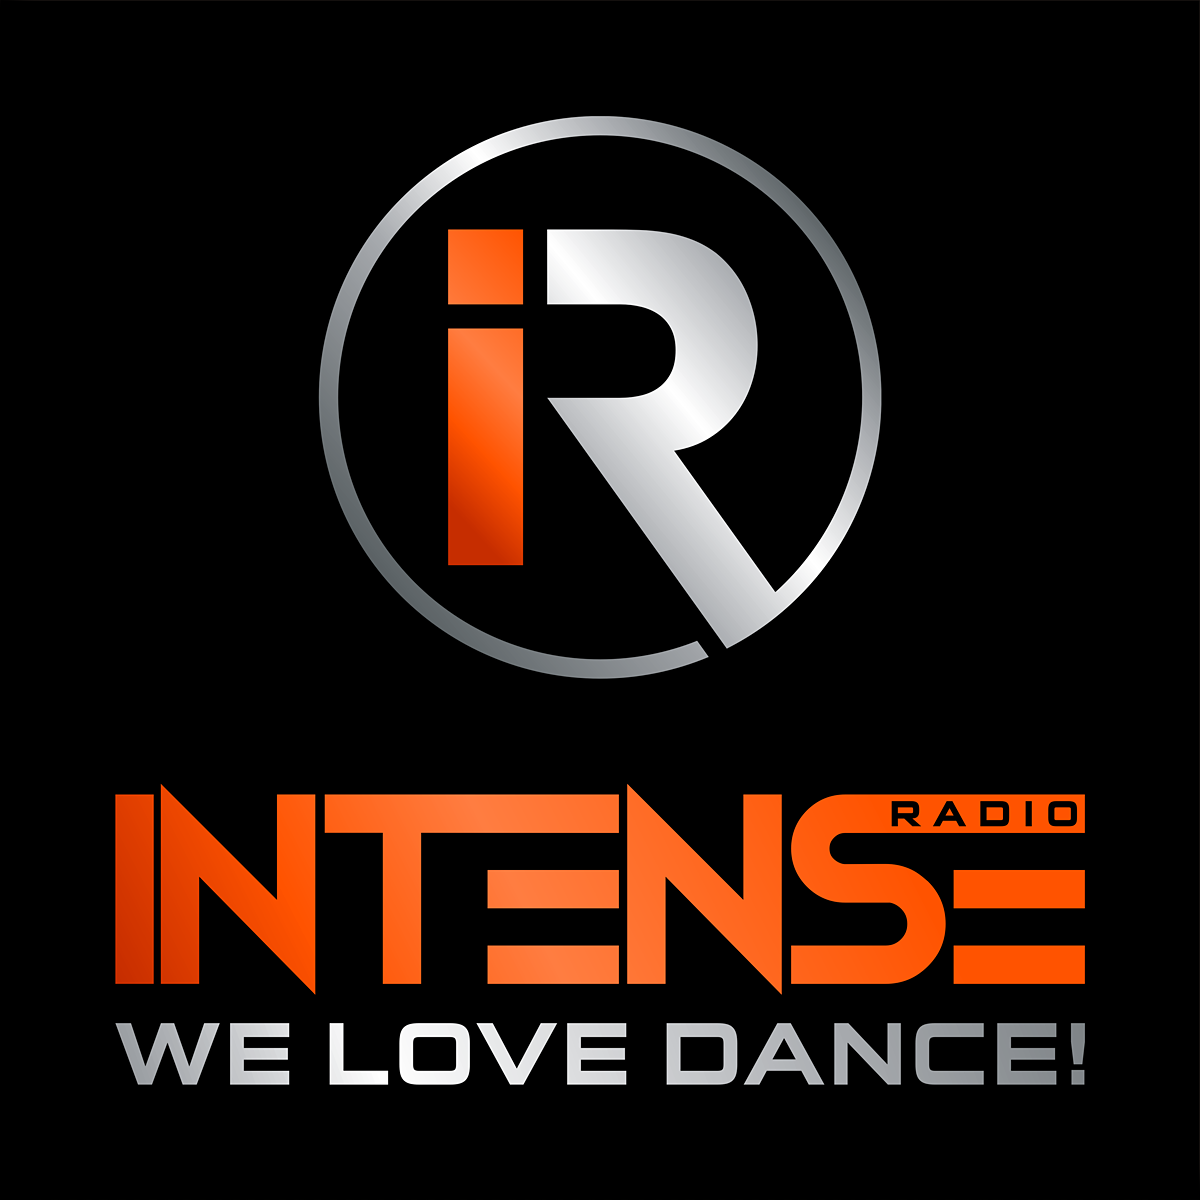 Radio Intense Radio, we love Dance Niederlande